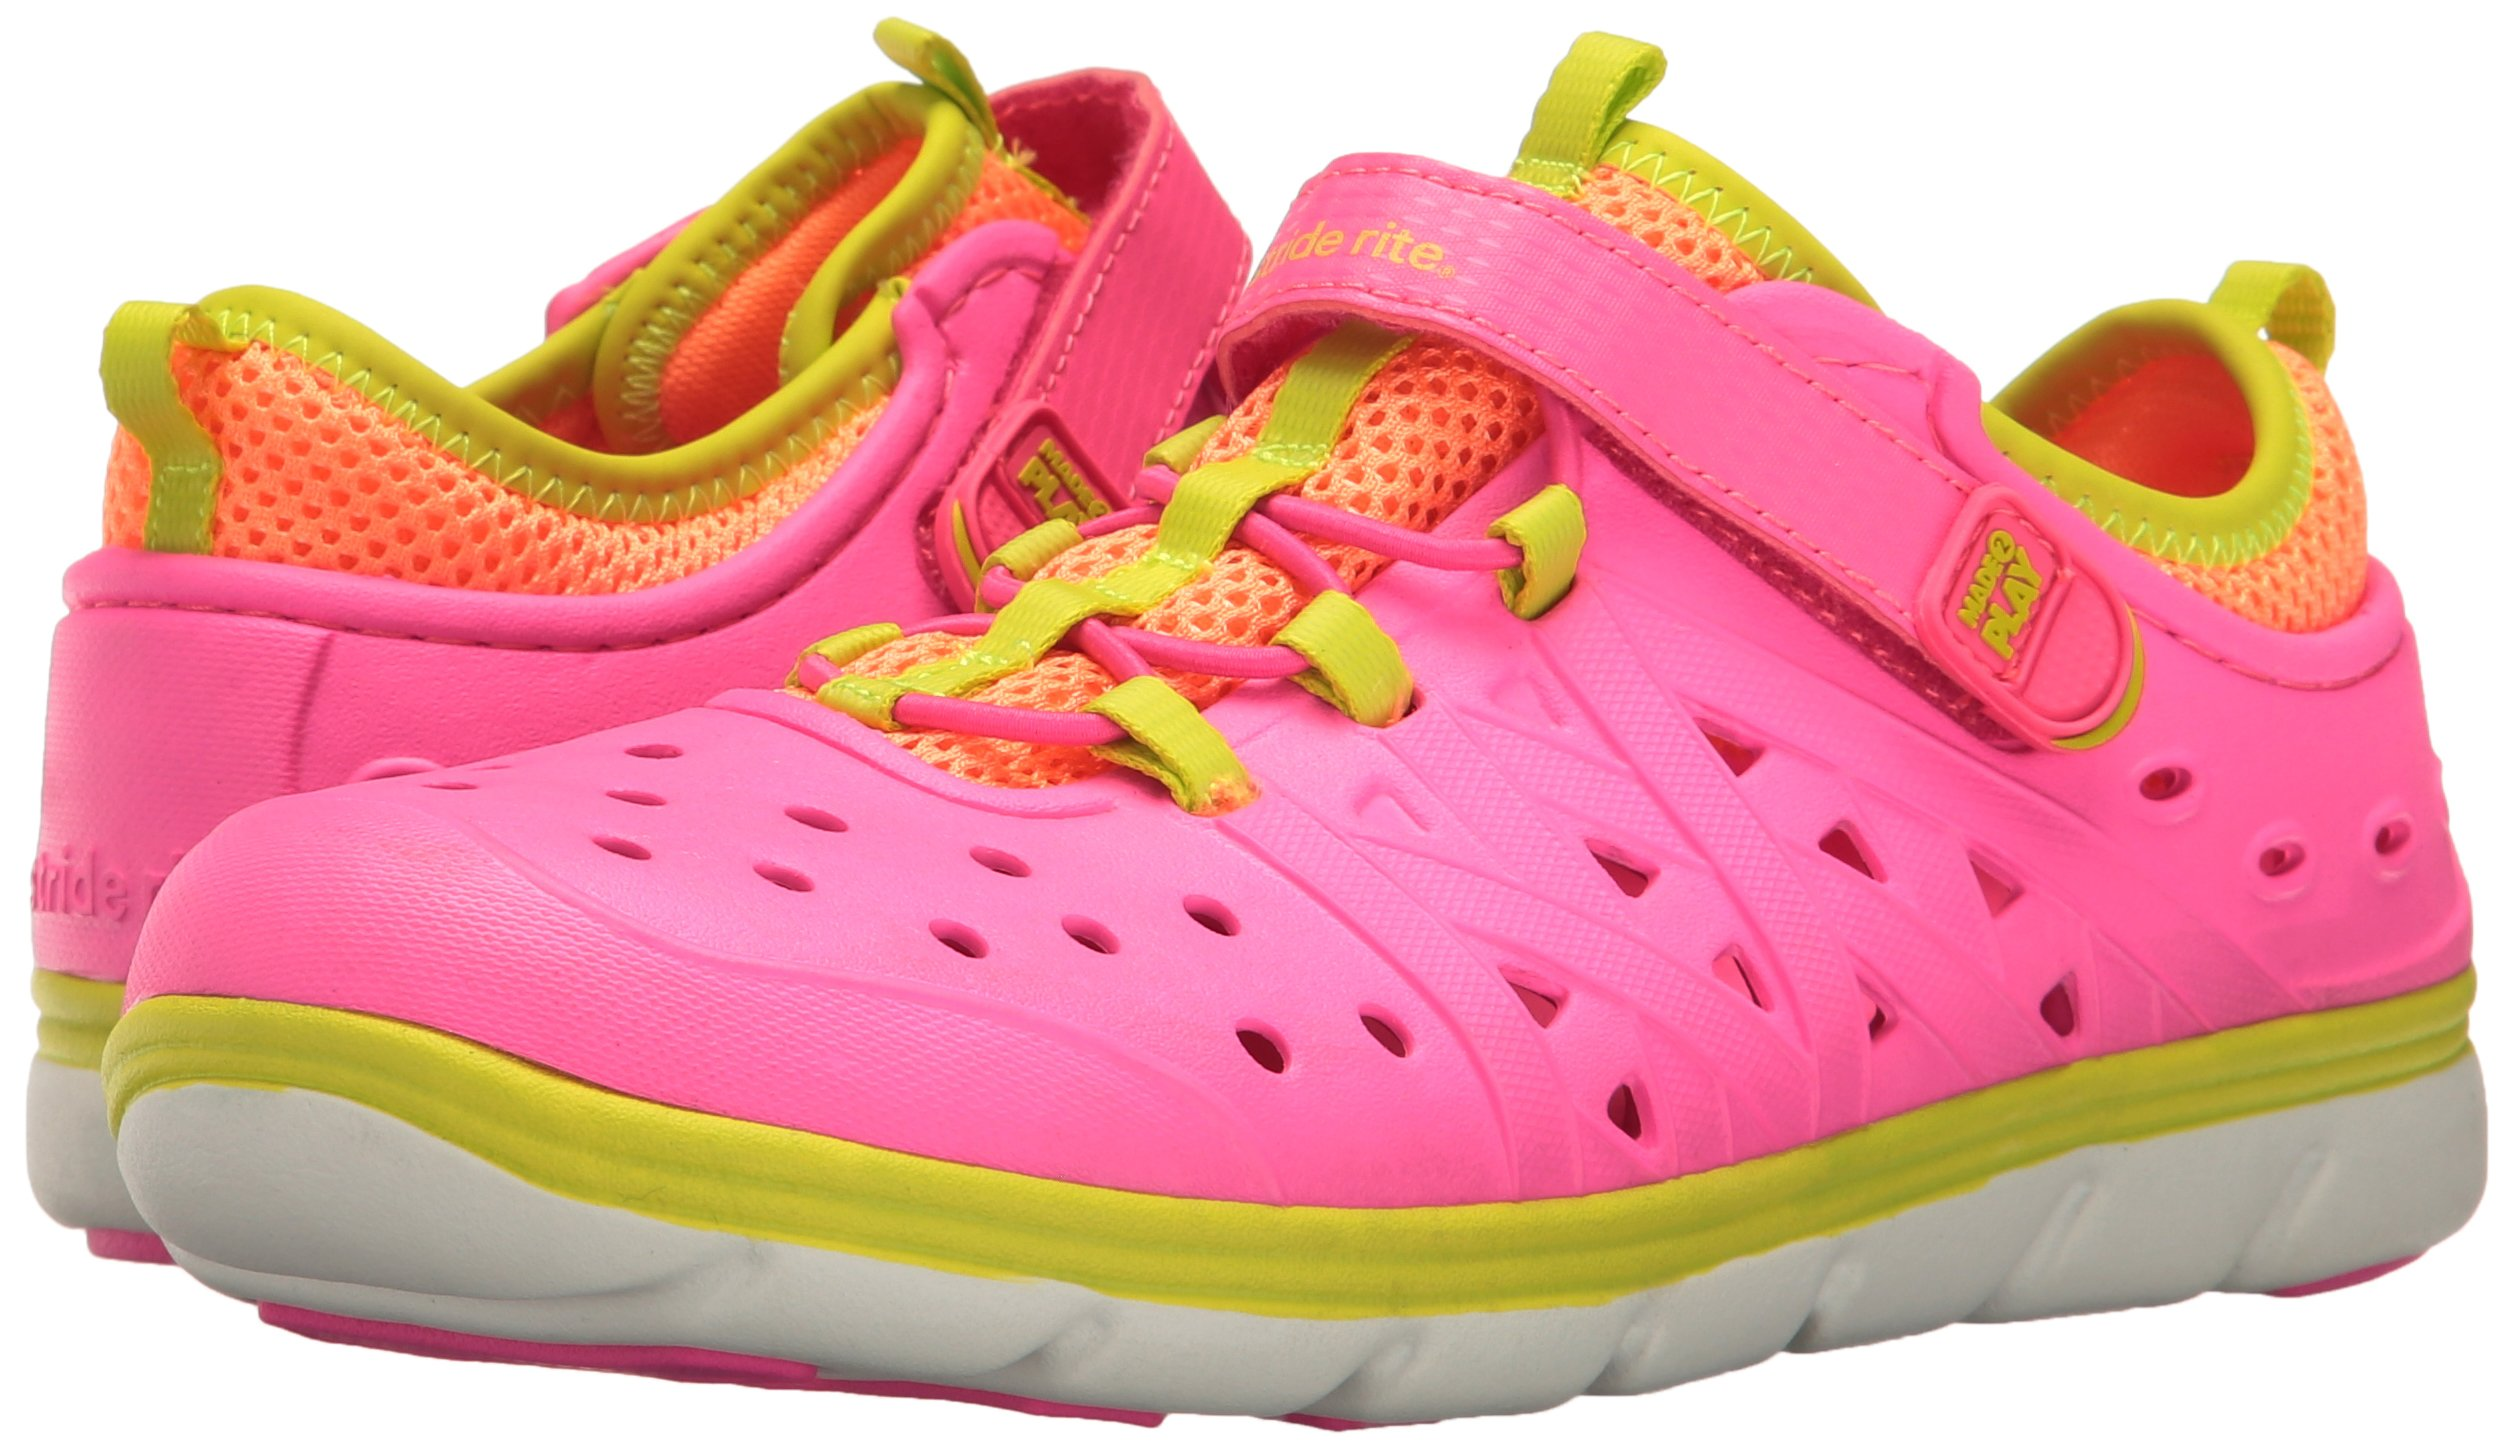 Stride Rite Girls' Made 2 Play Phibian (Toddler/Little Kid), Pink, 10 M by Stride Rite (Image #2)